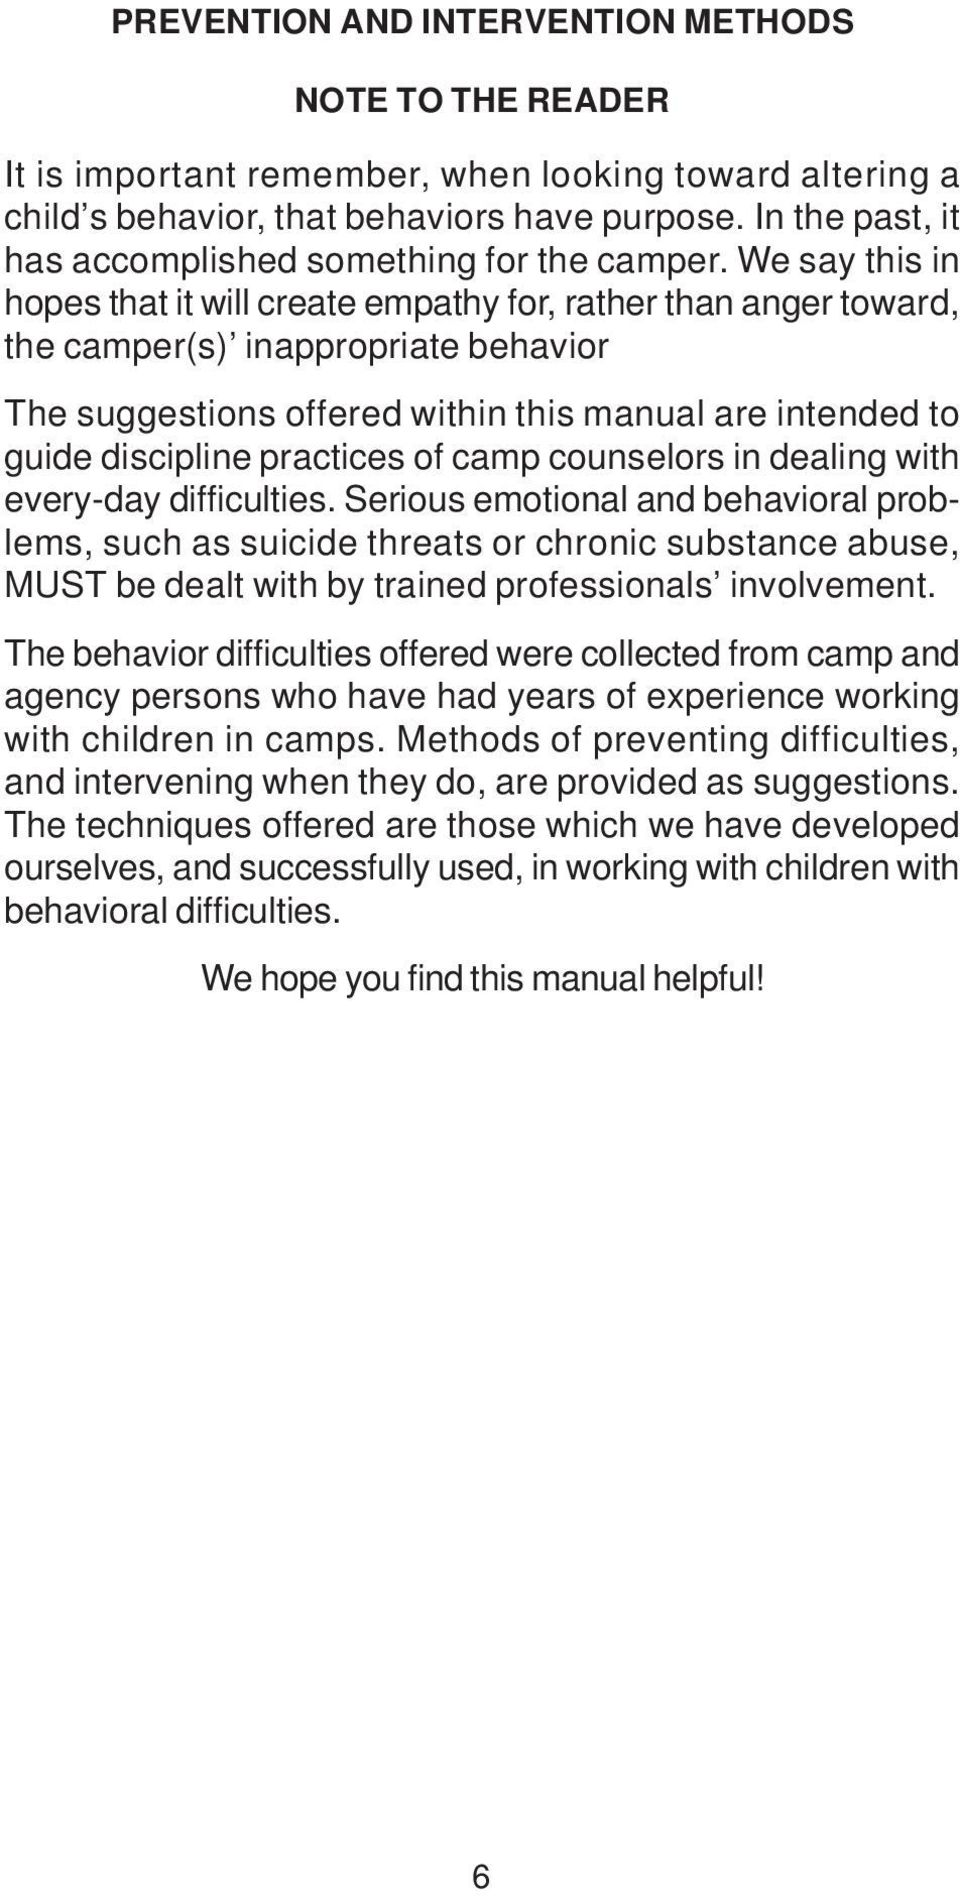 We say this in hopes that it will create empathy for, rather than anger toward, the camper(s) inappropriate behavior The suggestions offered within this manual are intended to guide discipline